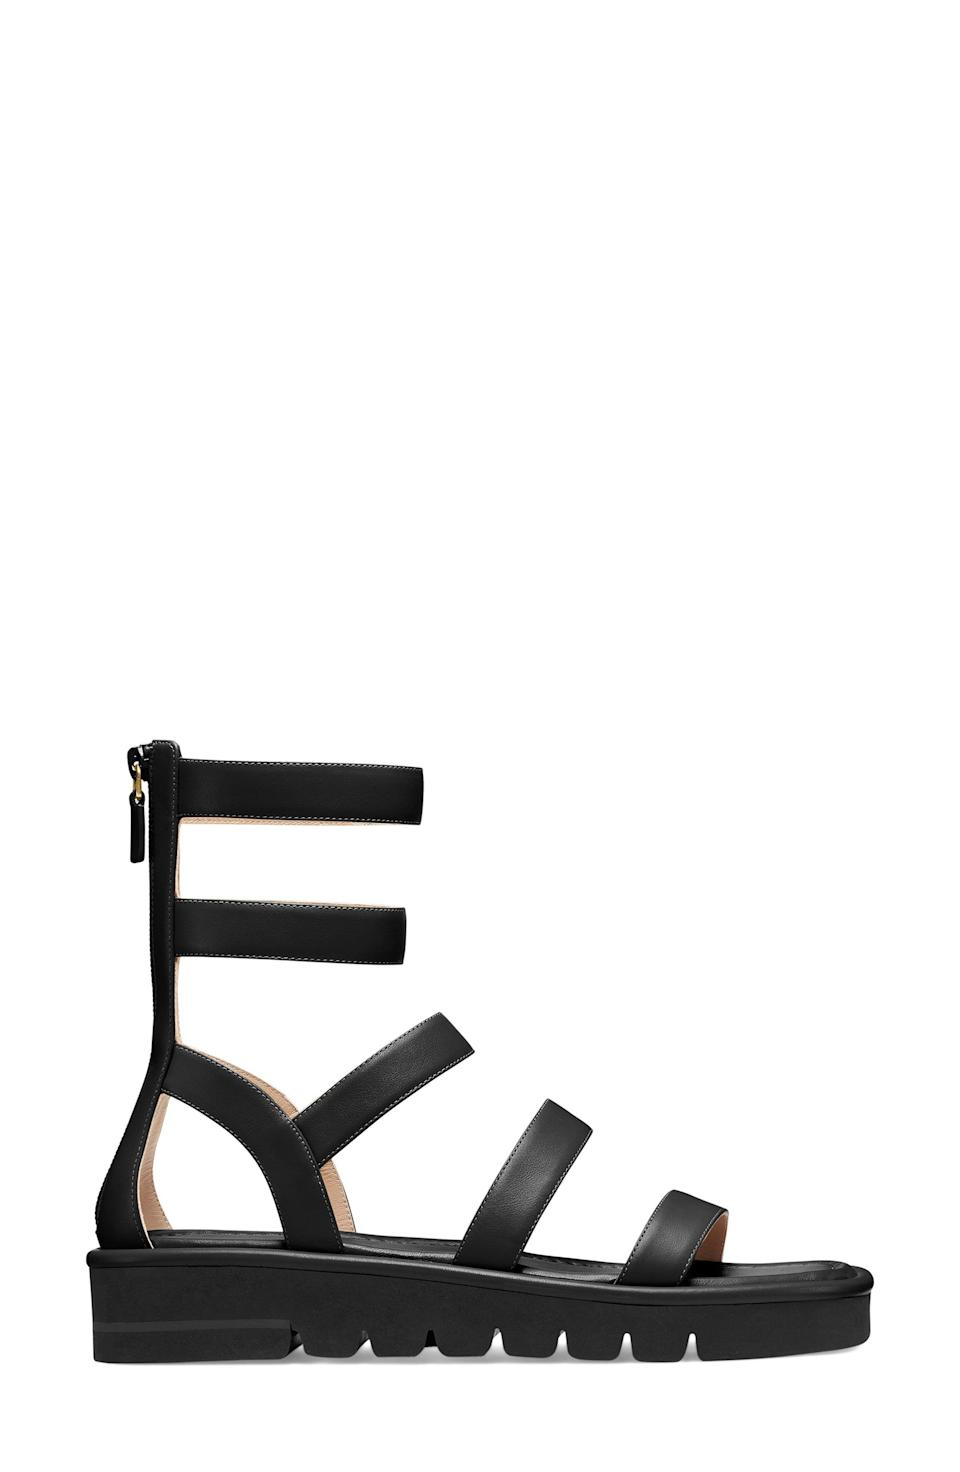 """<p><strong>Stuart Weitzman </strong></p><p>nordstrom.com</p><p><strong>$450.00</strong></p><p><a href=""""https://go.redirectingat.com?id=74968X1596630&url=https%3A%2F%2Fwww.nordstrom.com%2Fs%2Fstuart-weitzman-gala-lift-sandal-women%2F5910243&sref=https%3A%2F%2Fwww.townandcountrymag.com%2Fstyle%2Ffashion-trends%2Fg36384322%2Fbest-sandals-for-women%2F"""" rel=""""nofollow noopener"""" target=""""_blank"""" data-ylk=""""slk:Shop Now"""" class=""""link rapid-noclick-resp"""">Shop Now</a></p><p>Think of these gladiator sandals as the summertime cousins to the <a href=""""https://www.townandcountrymag.com/style/fashion-trends/g34849860/best-combat-boots-women/"""" rel=""""nofollow noopener"""" target=""""_blank"""" data-ylk=""""slk:combat boots"""" class=""""link rapid-noclick-resp"""">combat boots</a> you lived in this winter. </p>"""